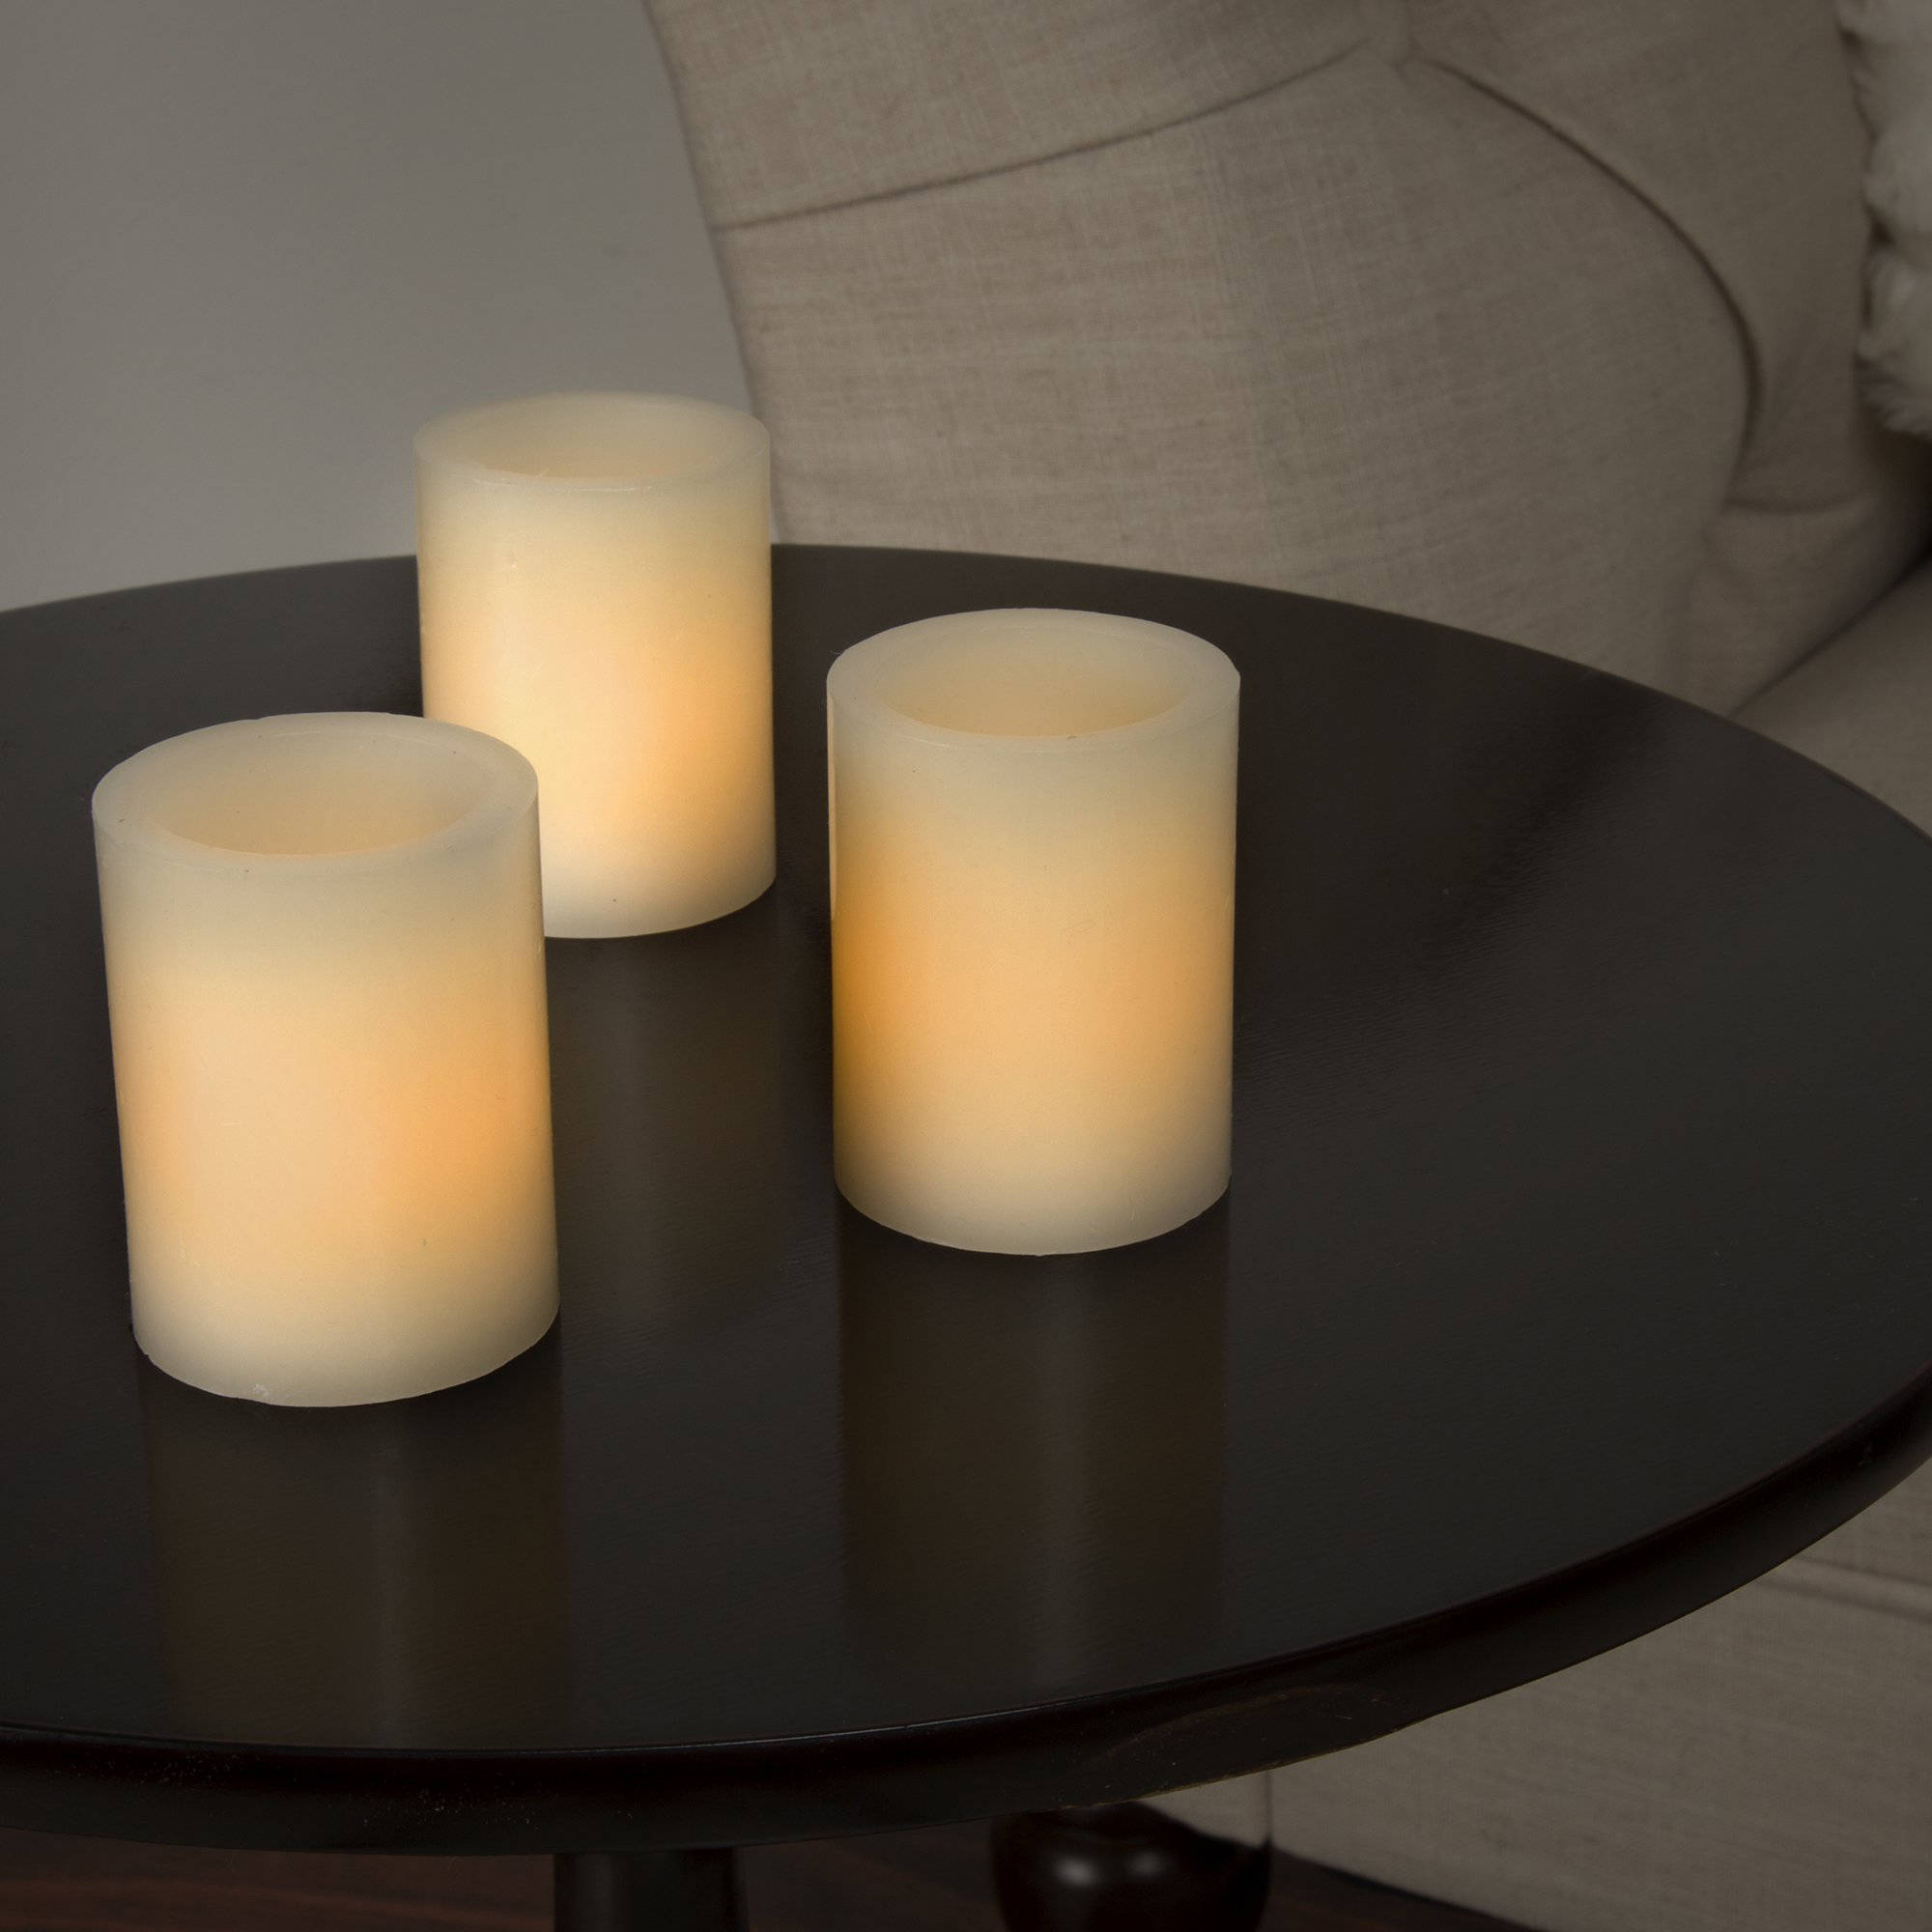 Lavish Home 8-Piece LED Votive Flameless Wax Candle Set